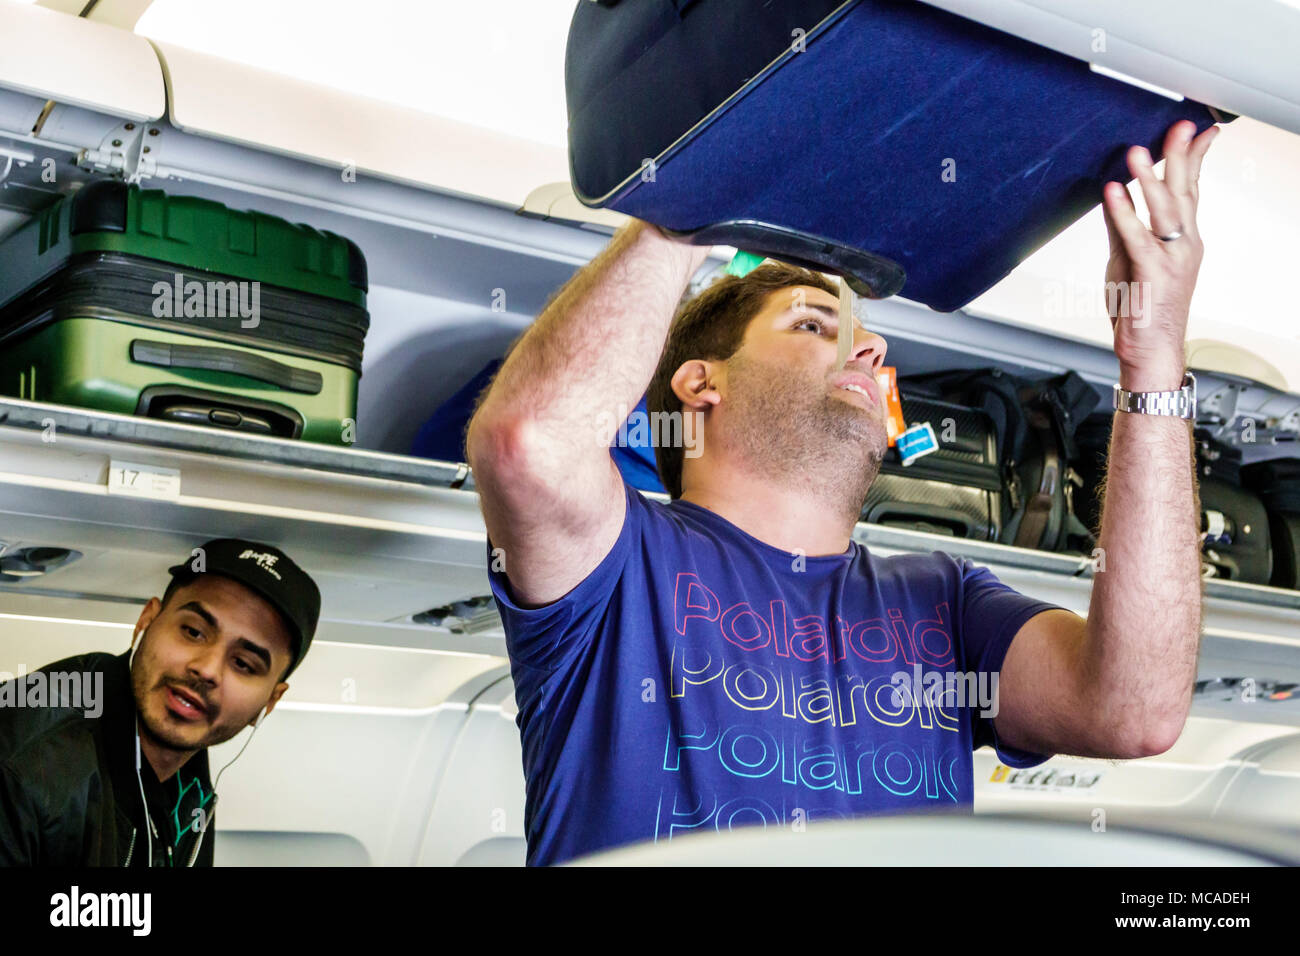 Florida Miami Miami International Airport MIA airplane cabin open overhead luggage bin Hispanic man passenger storing baggage - Stock Image